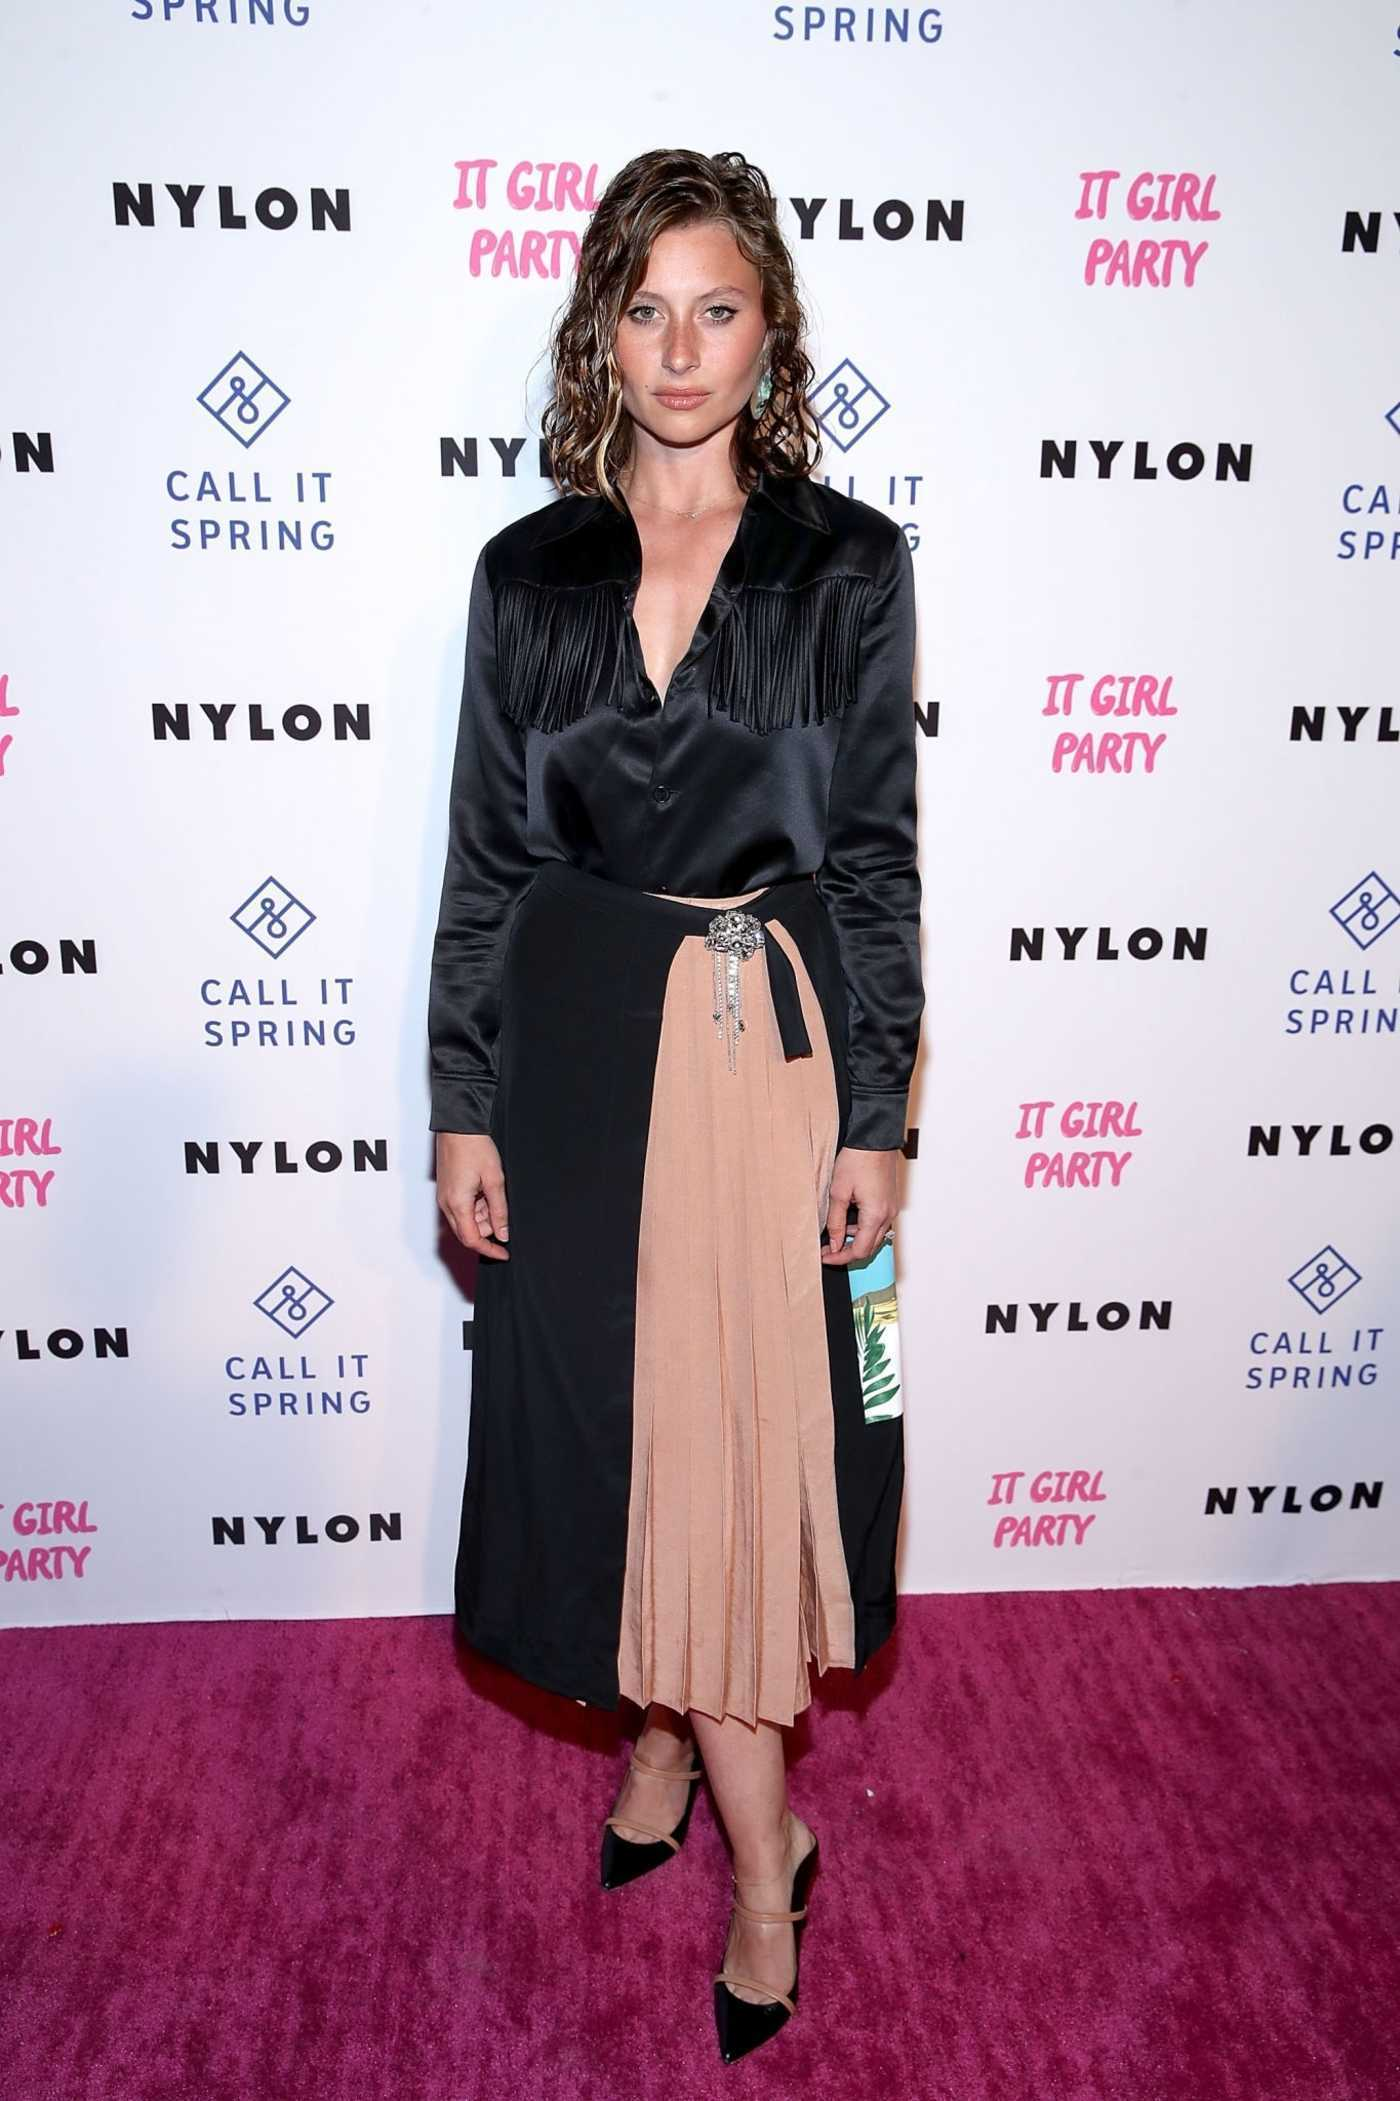 Aly Michalka Attends NYLON's Annual It Girl Party at The Ace Hotel in LA 10/11/2018